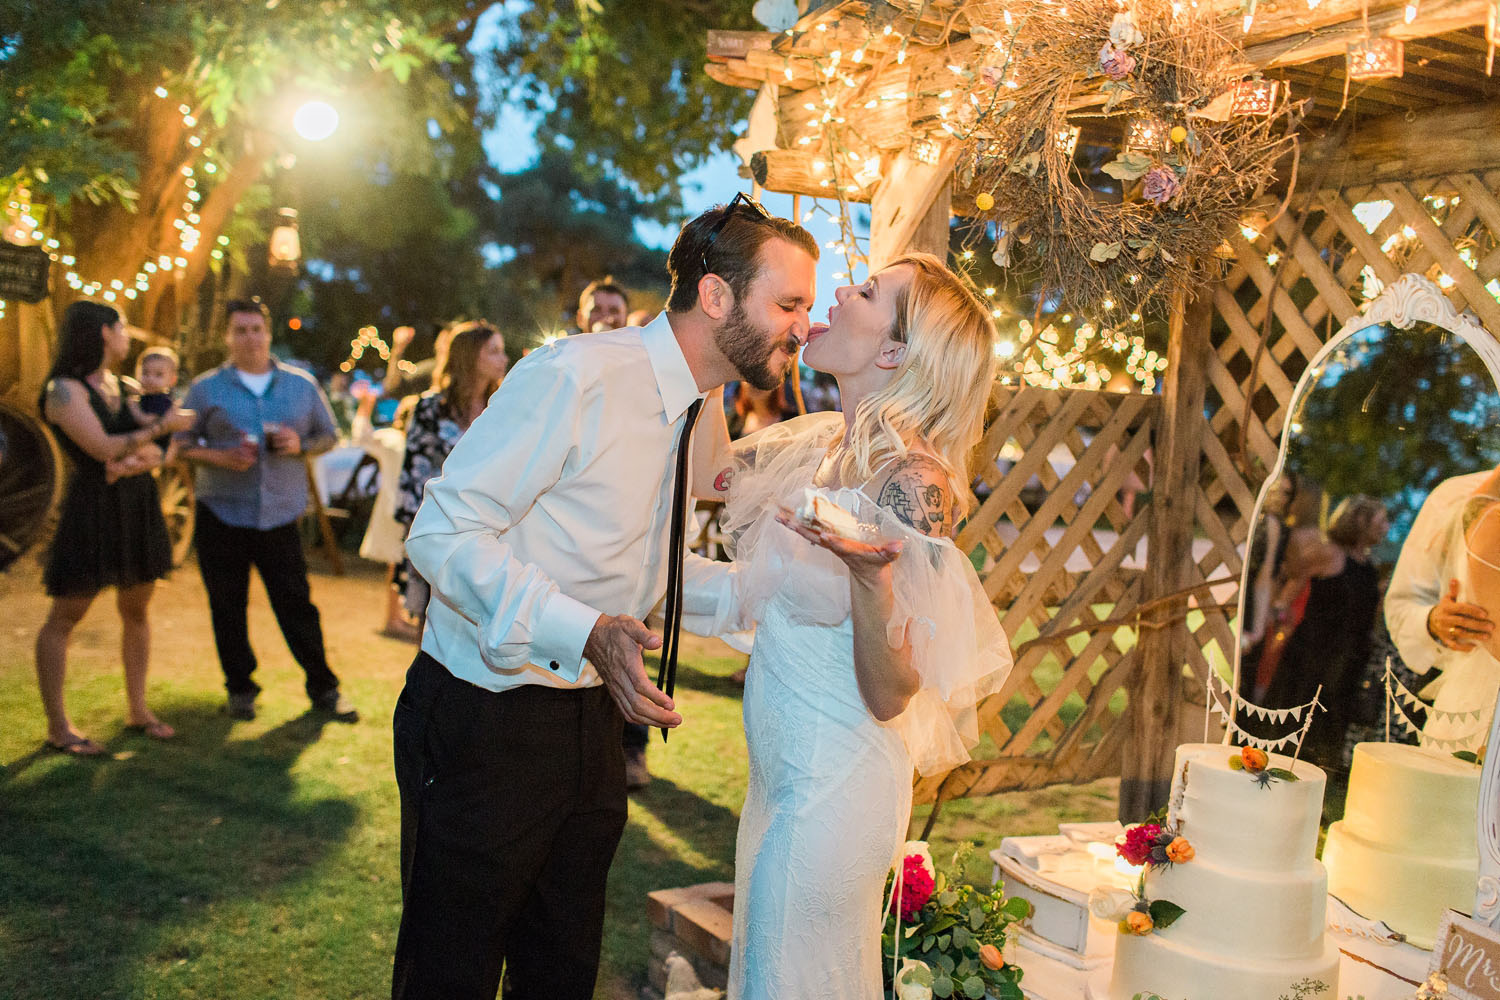 The Photege - Elegant Boho Wedding on Suburu Farm in Bakersfield California- Cassie and Darin Buoni-3081